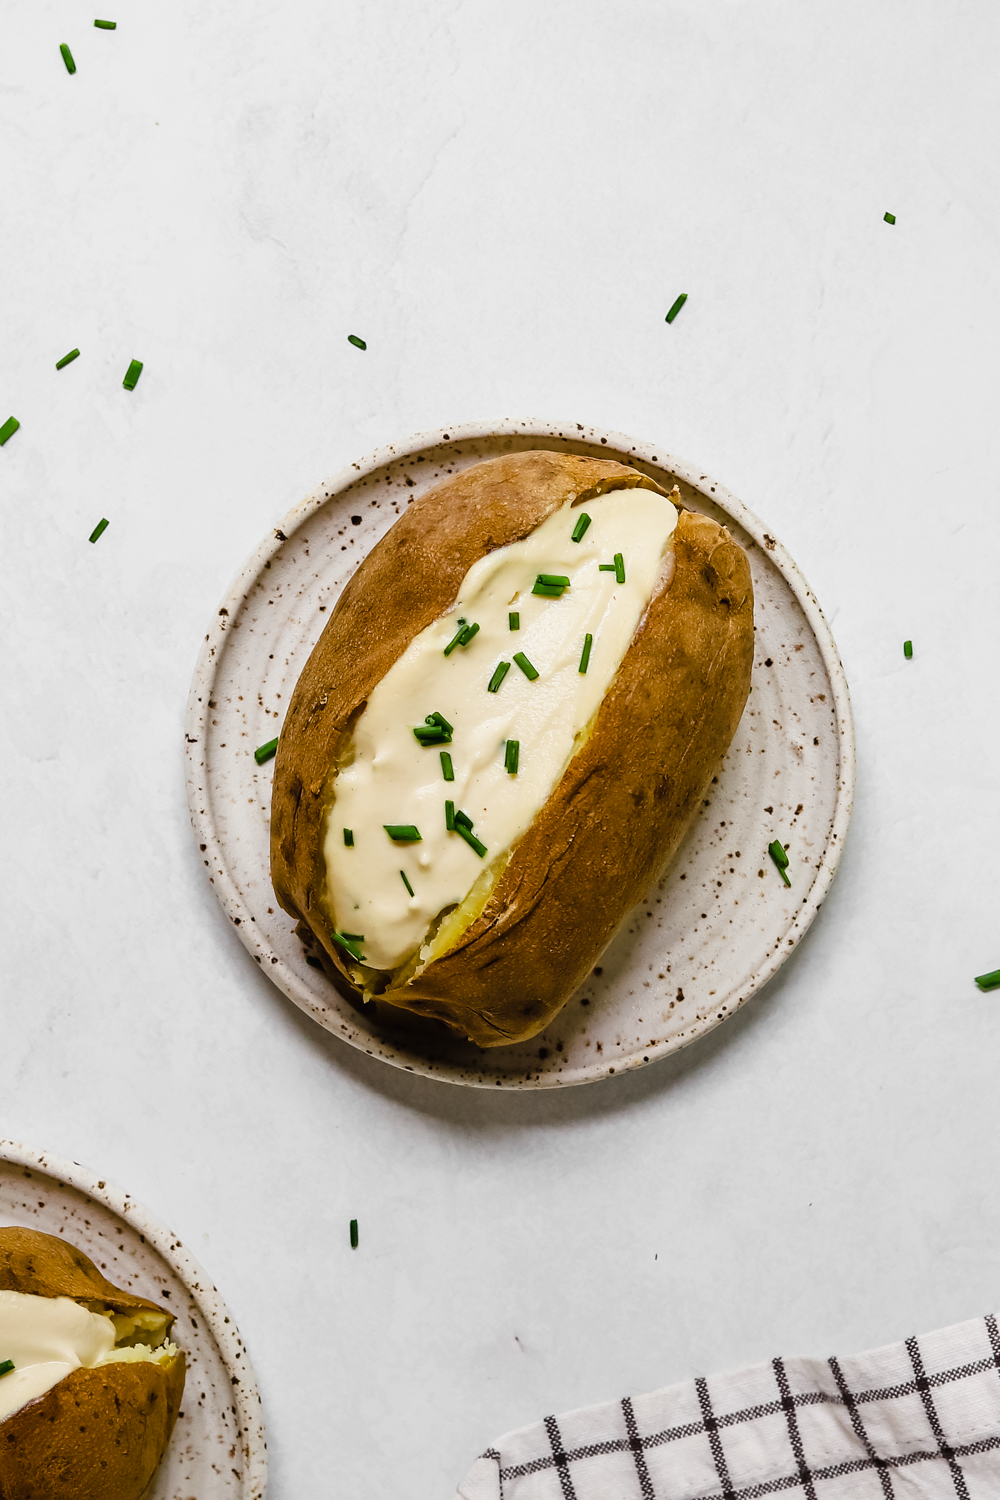 Baked potato on a small plate, cut in half and topped with cashew sour cream and chopped chives.